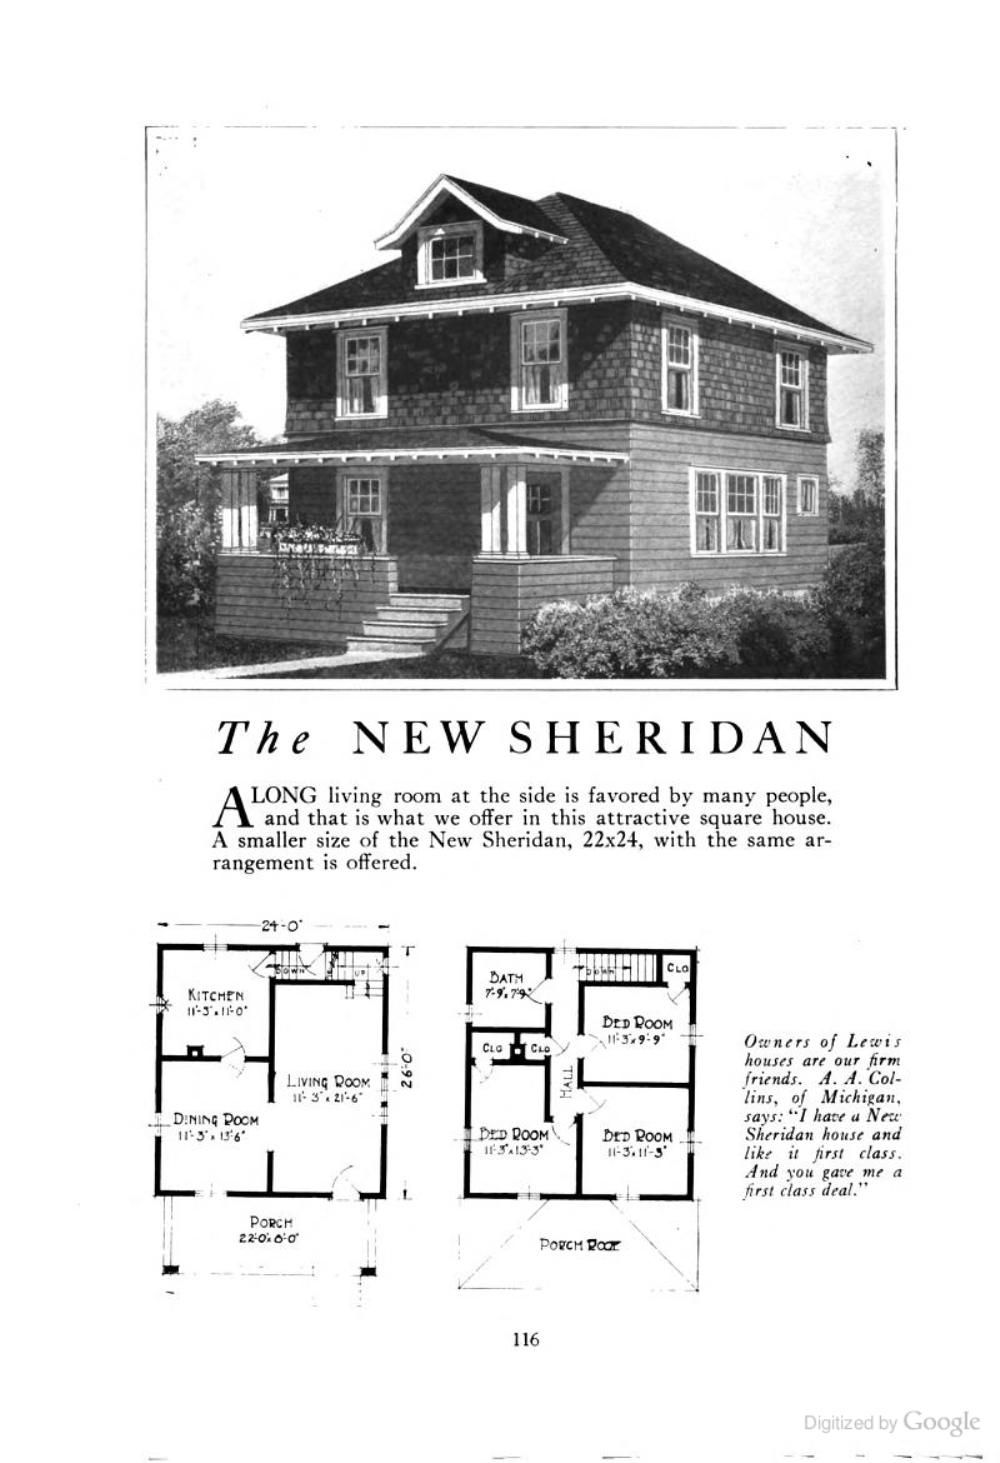 The New Sheridan An American Foursquare Kit House House Plan